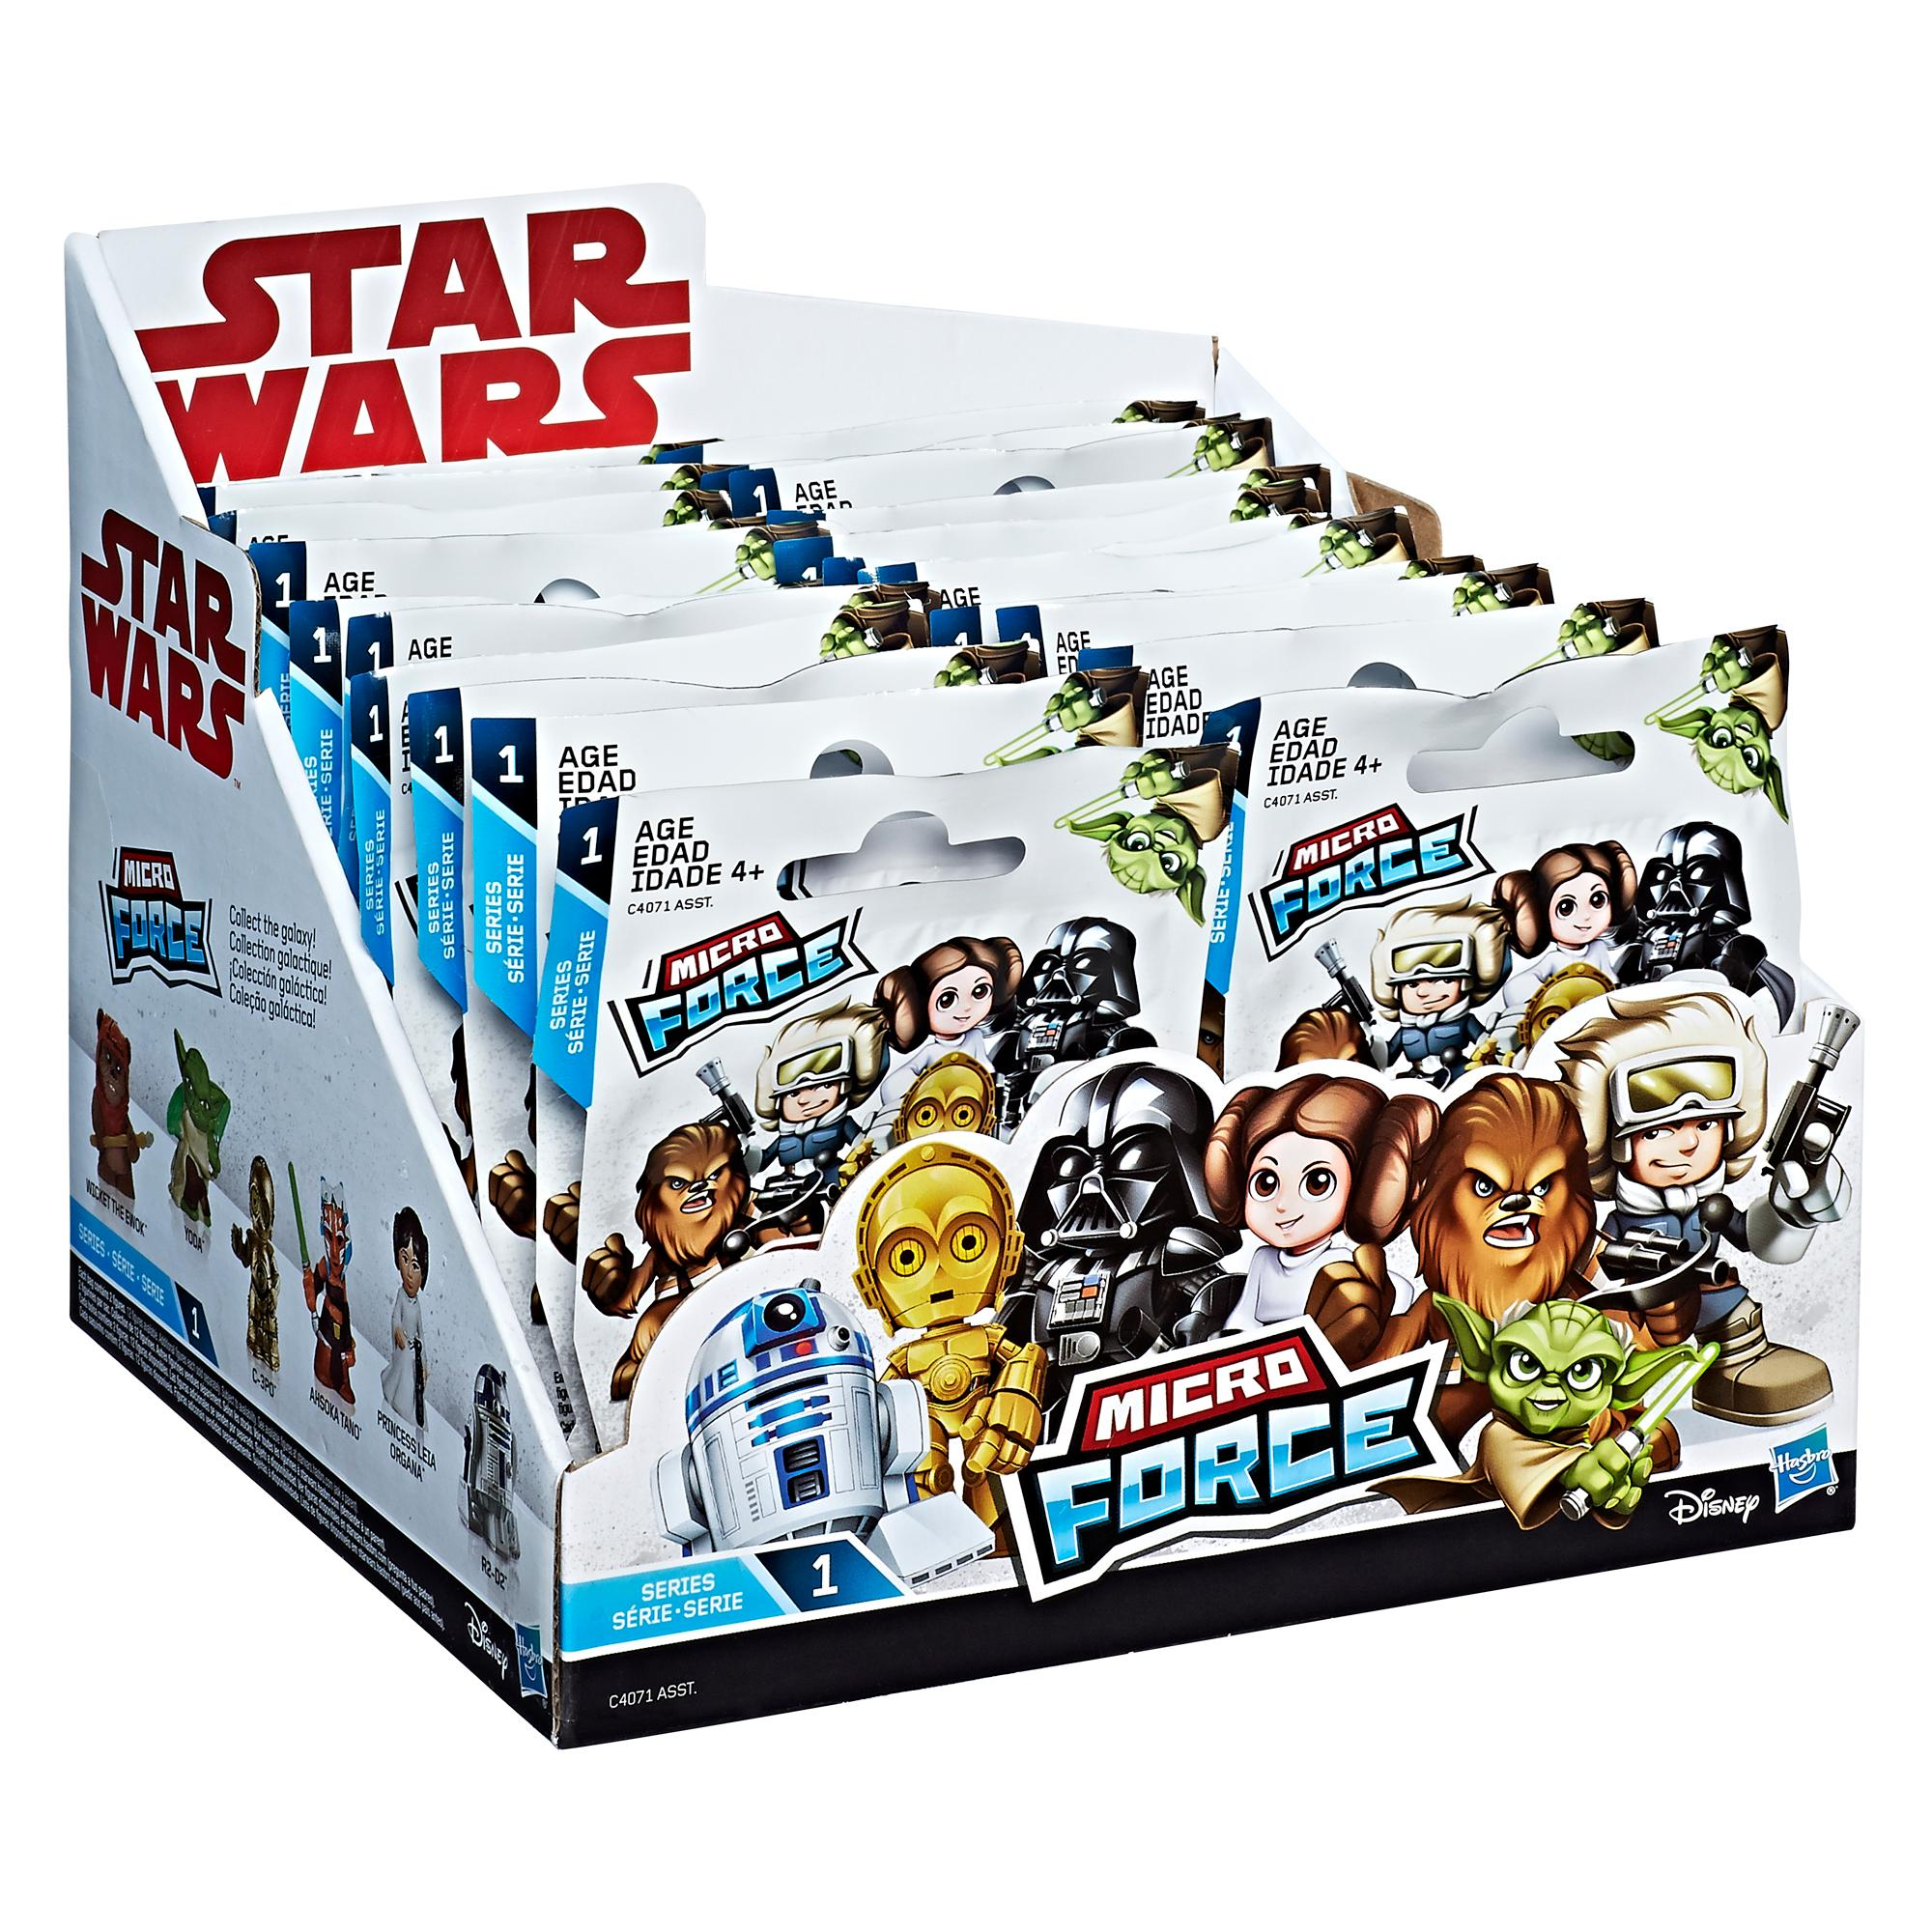 Star Wars Micro Force Episode 8 BLIND BAGS